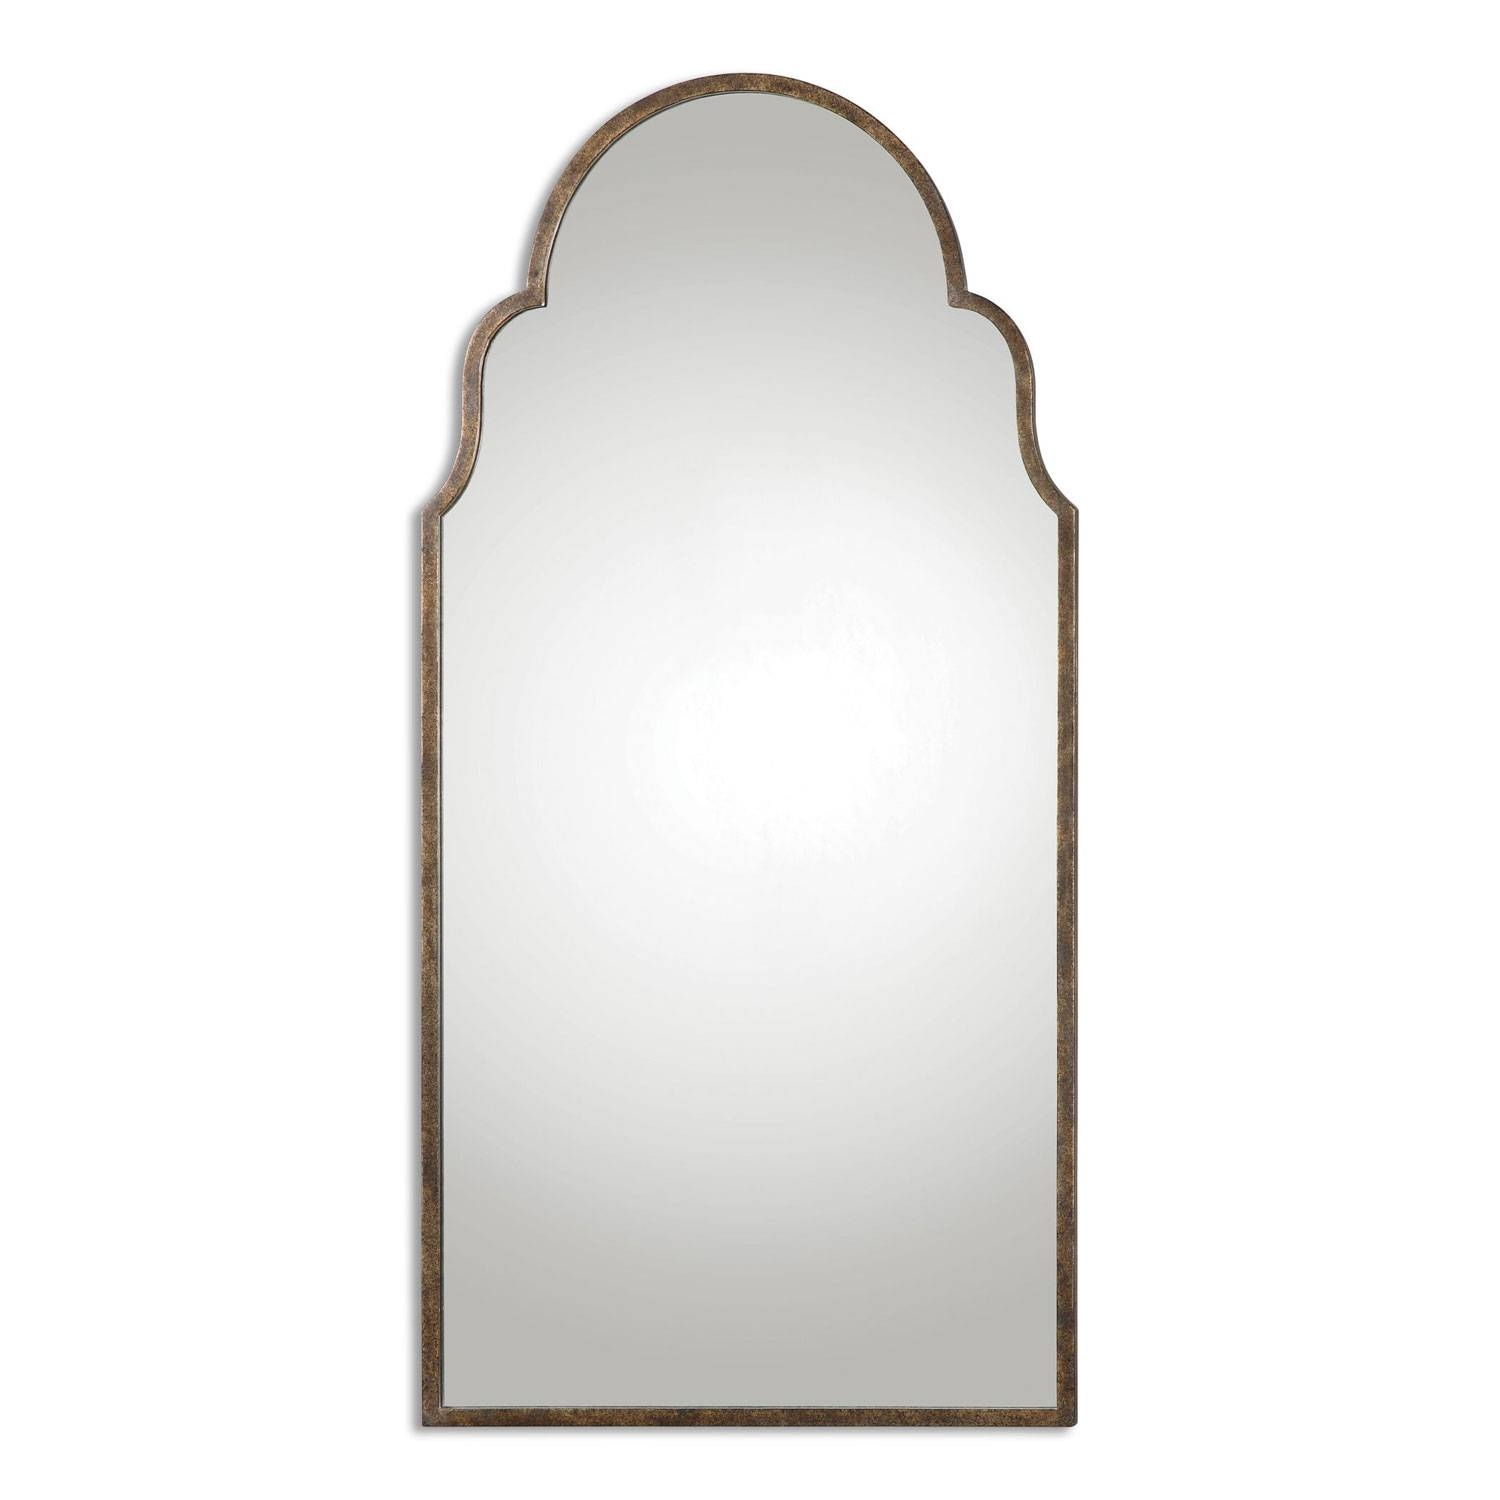 Brayden Rust Bronze Arch Mirror Uttermost Wall Mirror Mirrors Home for Arched Bathroom Mirrors (Image 8 of 15)